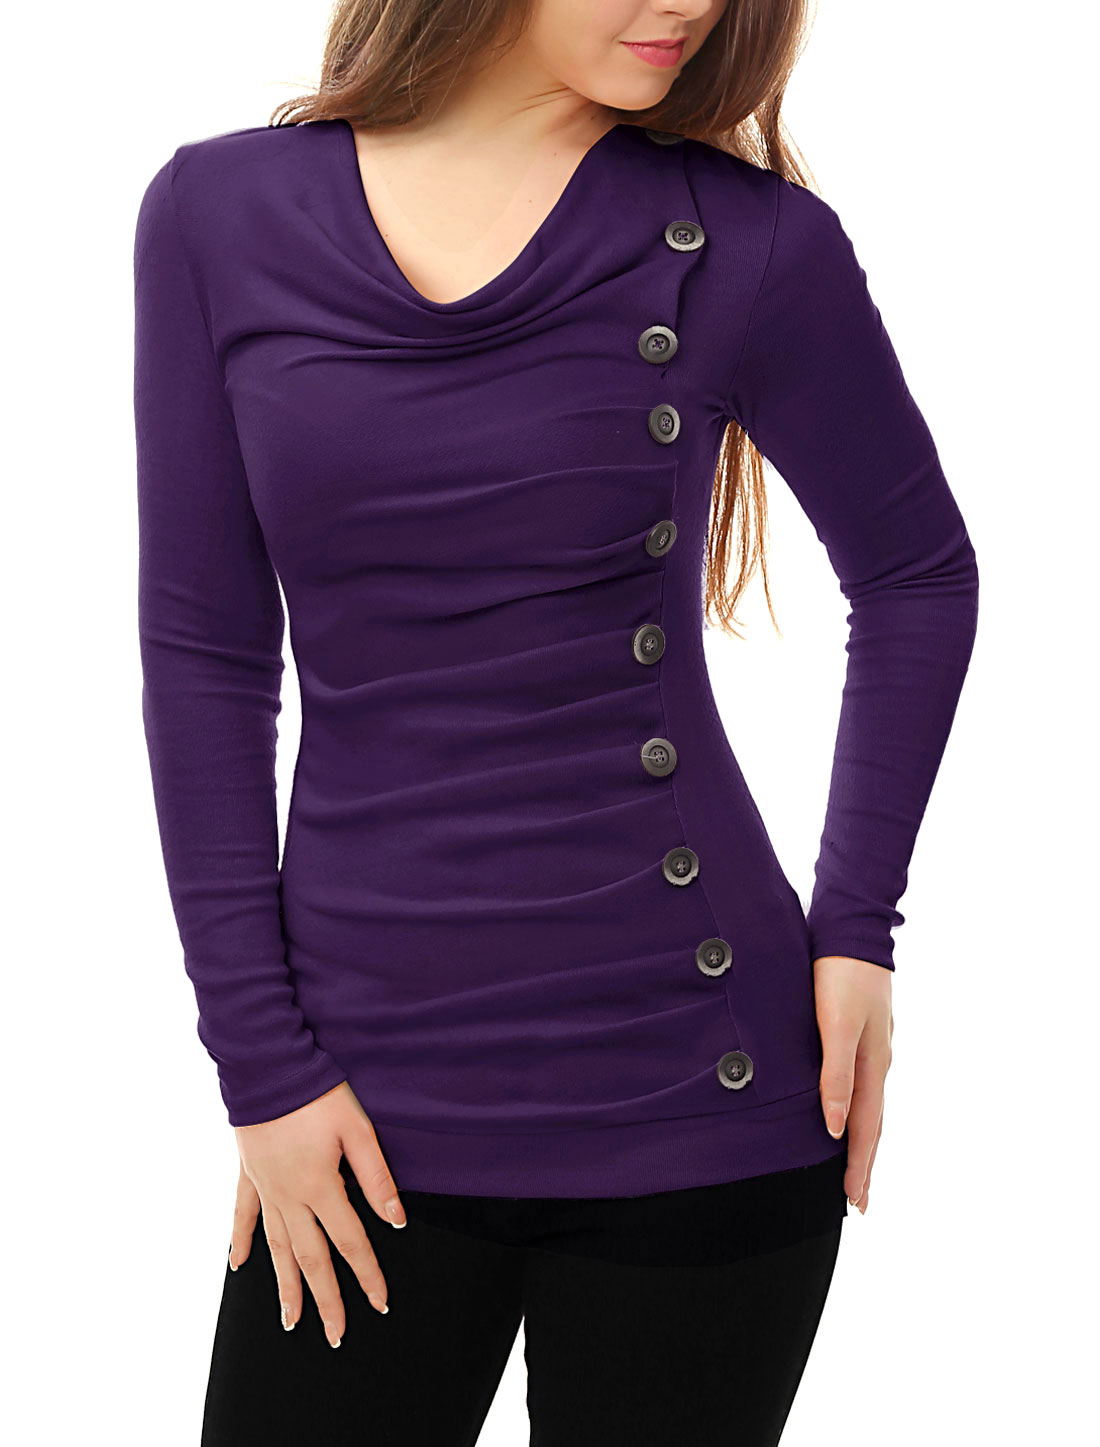 Women Cowl Neck Long Sleeves Buttons Decor Ruched Top Purple S